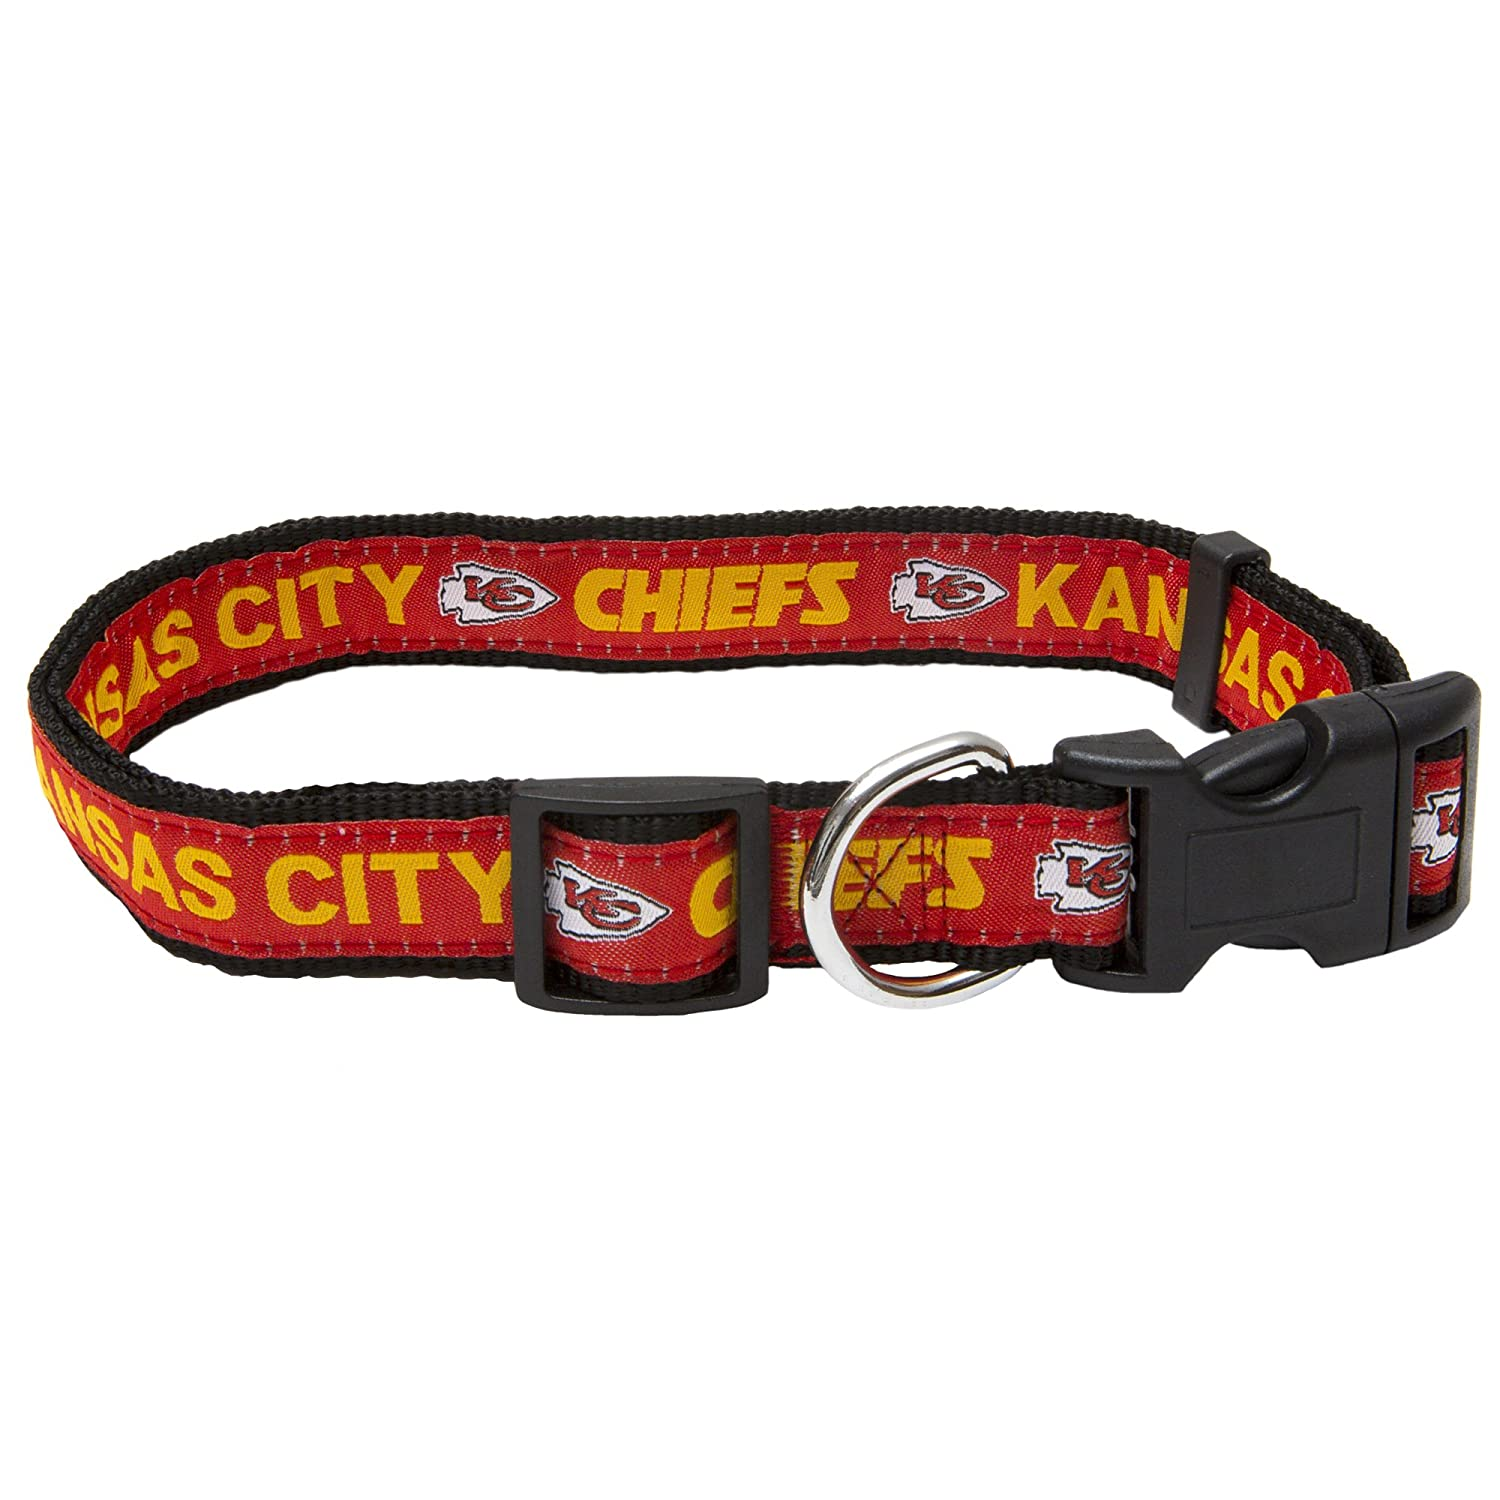 c13b3e13 Pets First NFL Dog Collar. 32 NFL Teams Available in 4 Sizes. Heavy-Duty,  Strong & Durable NFL PET Collar. Football Gear for The Sporty Pup.